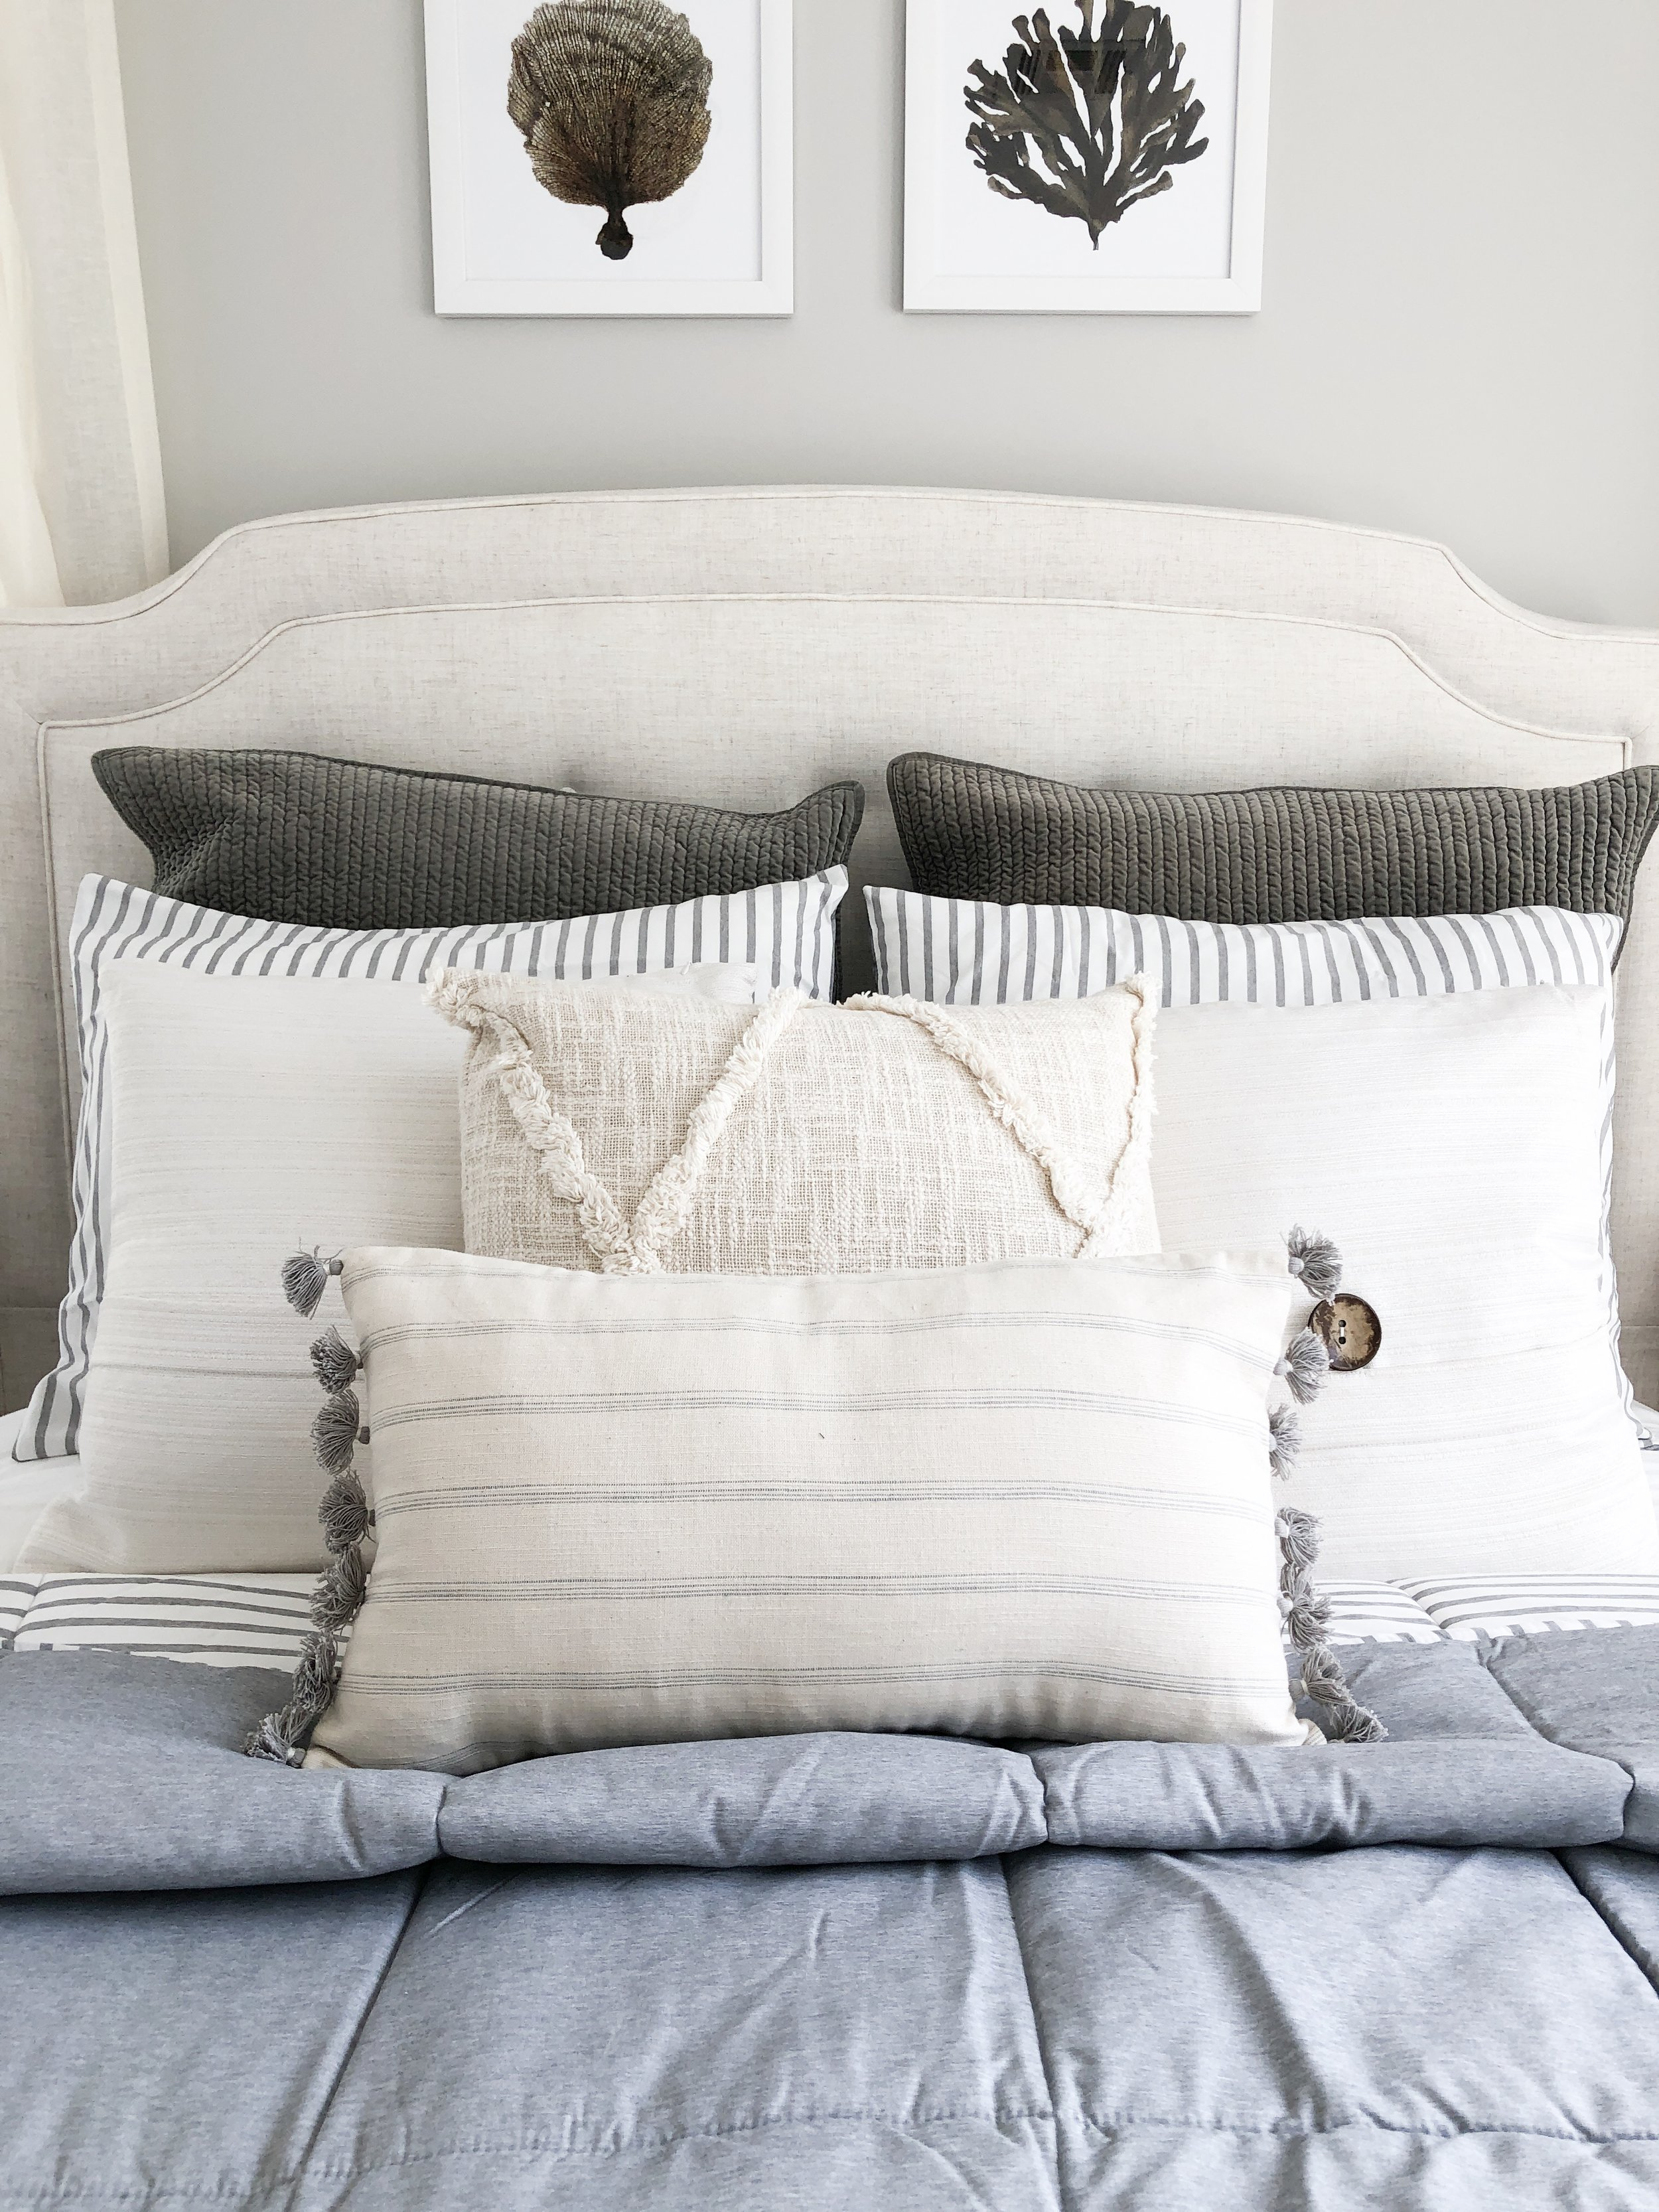 Pillow game strong!